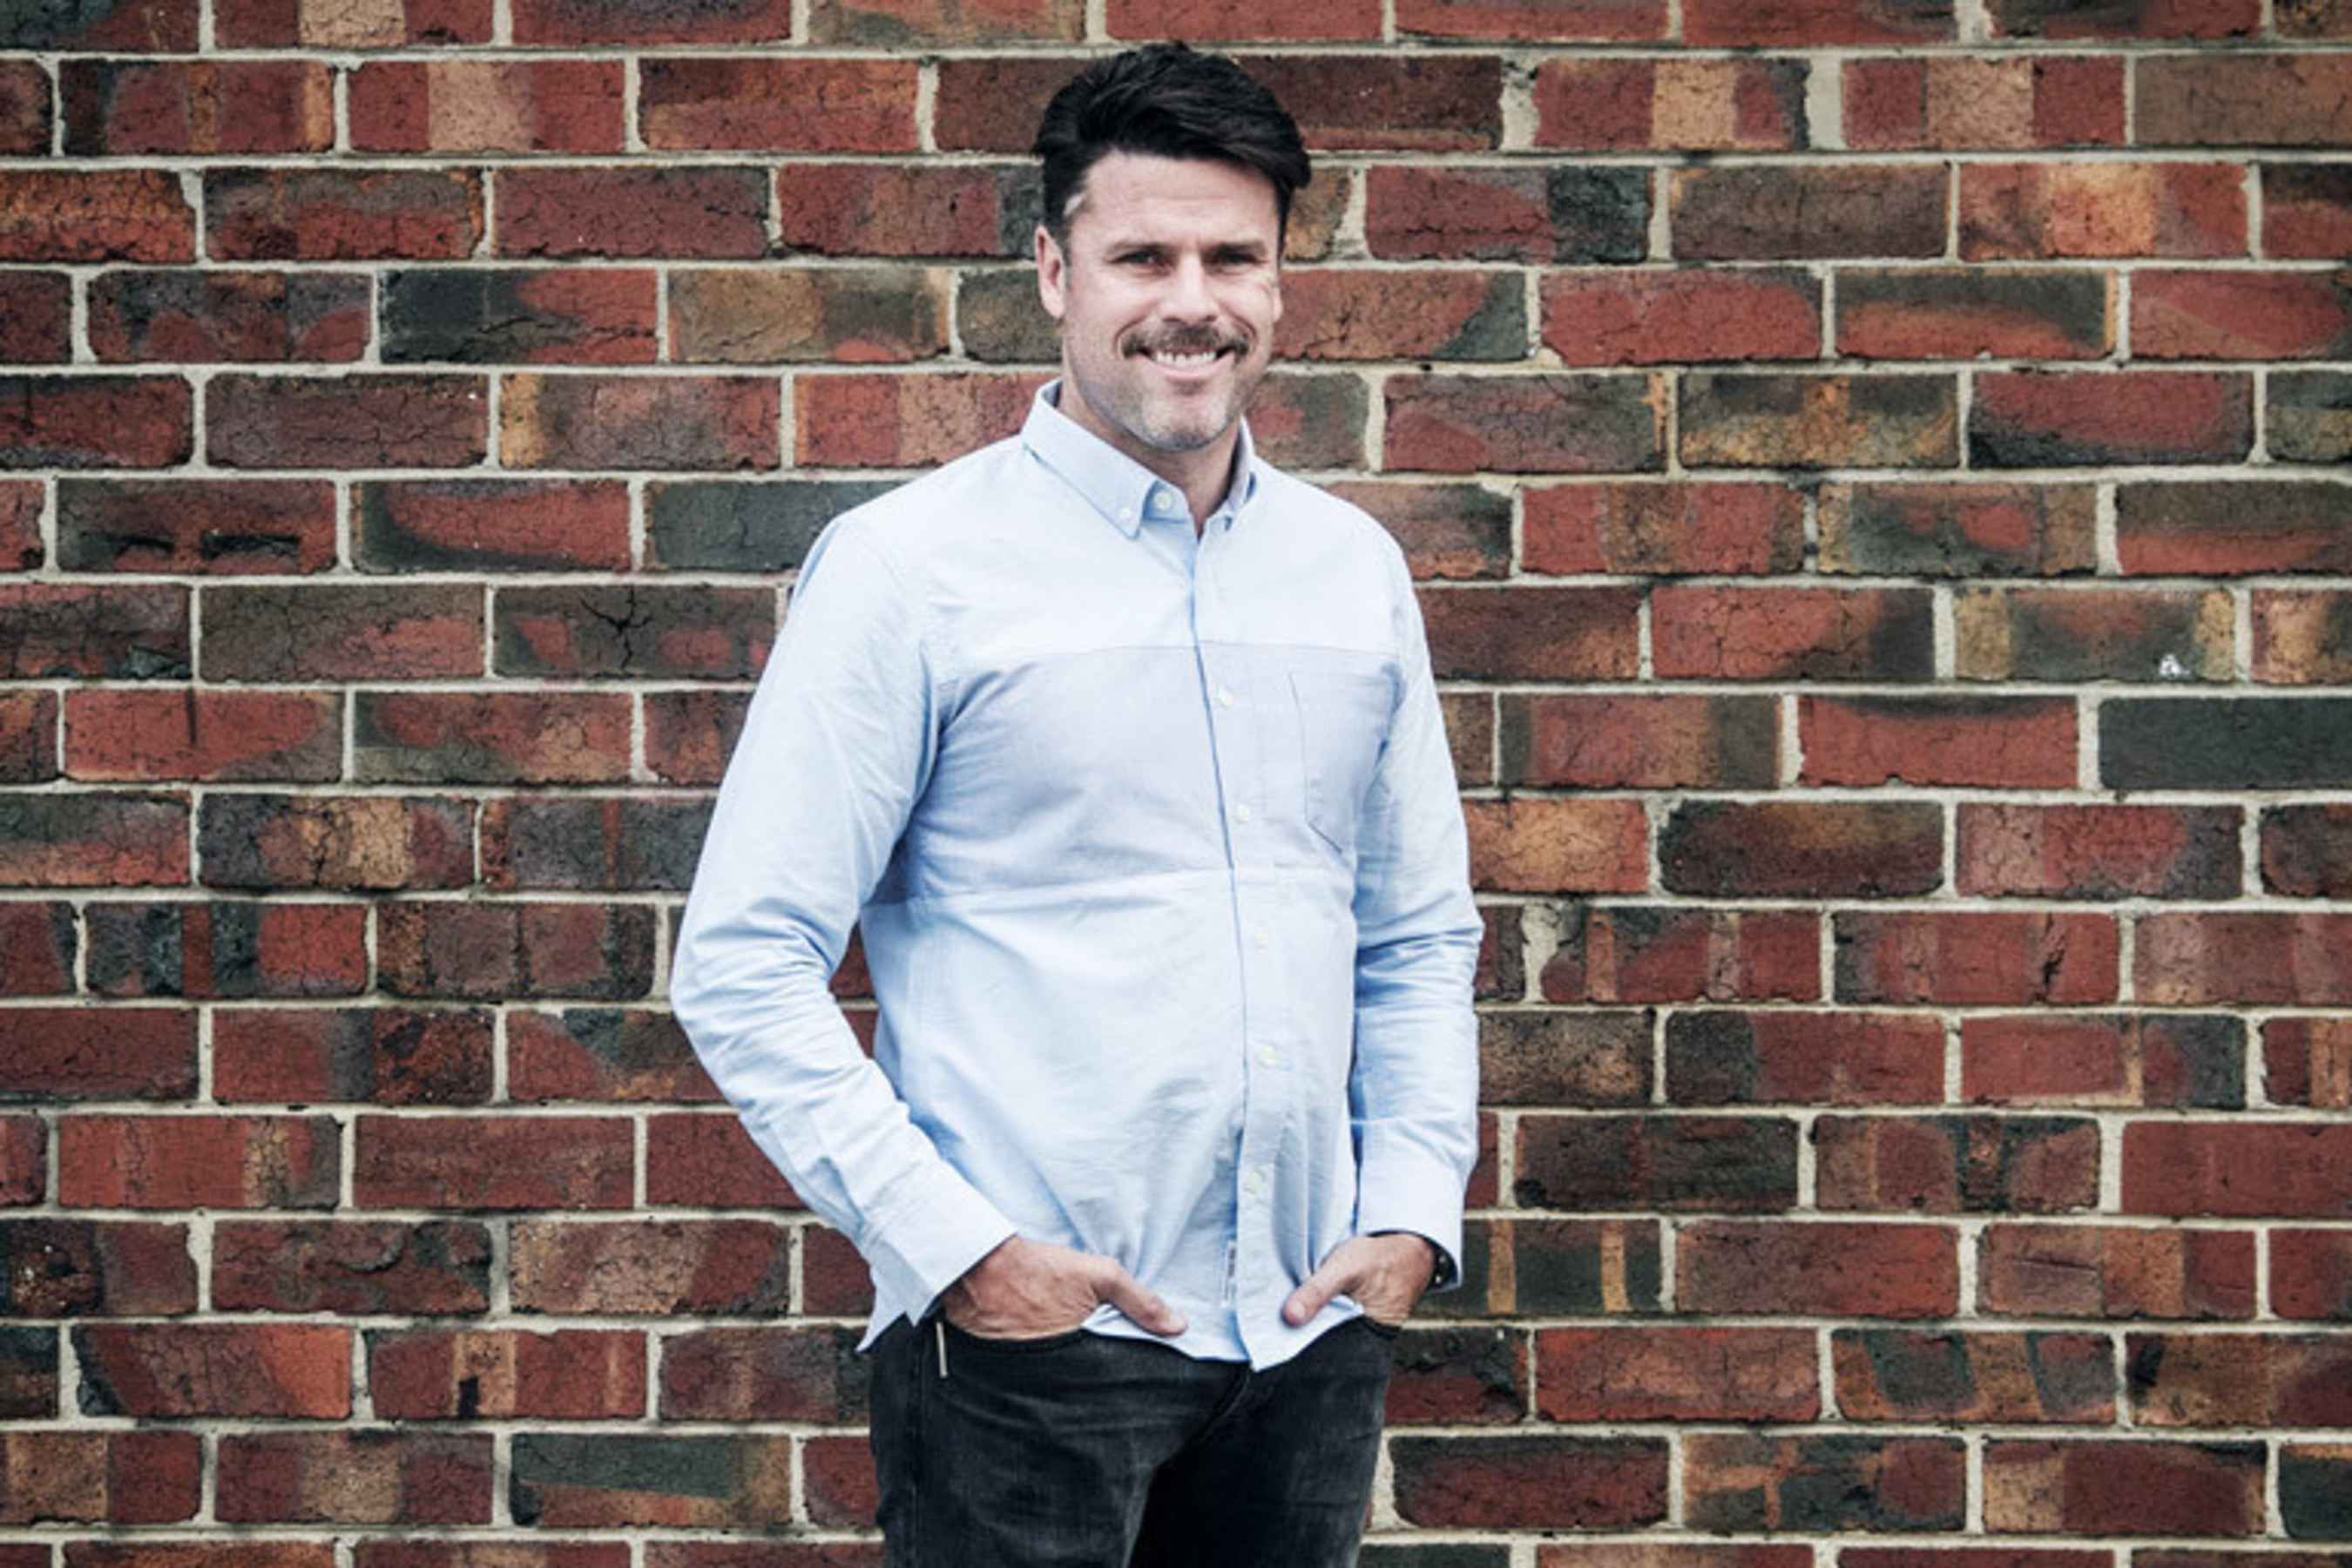 Adam Garone, Movember Foundation co-founder, has built a global charity operating across 21 countries, that has raised over $715 million for men's health programs.